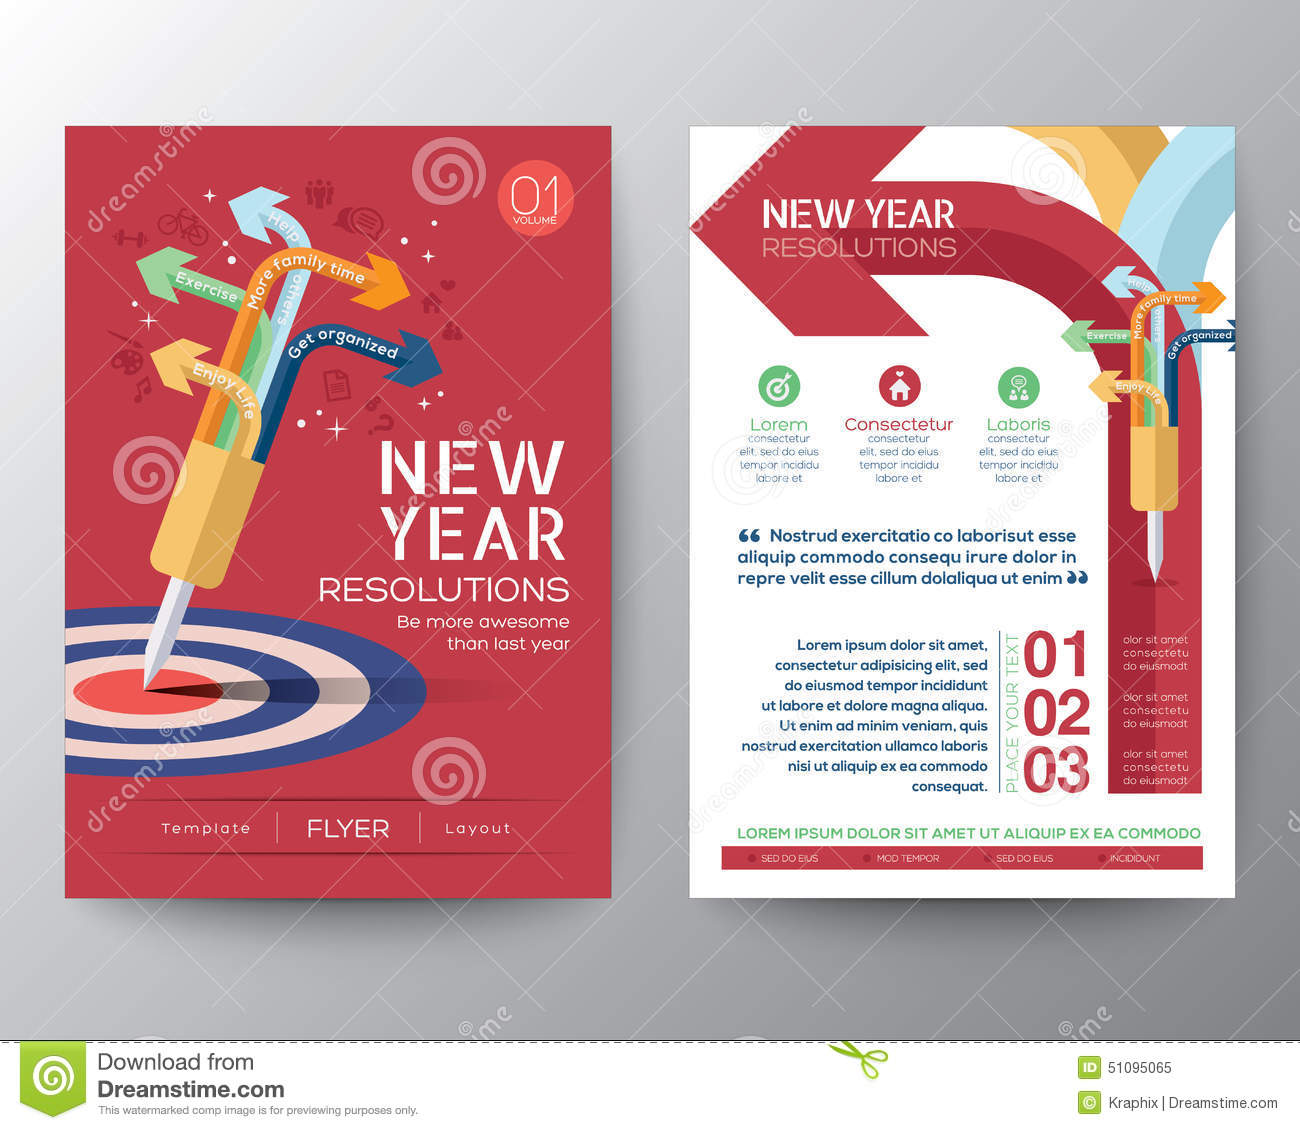 Book Cover Design In Coreldraw Tutorial : Brochure flyer design layout vector template iwith new